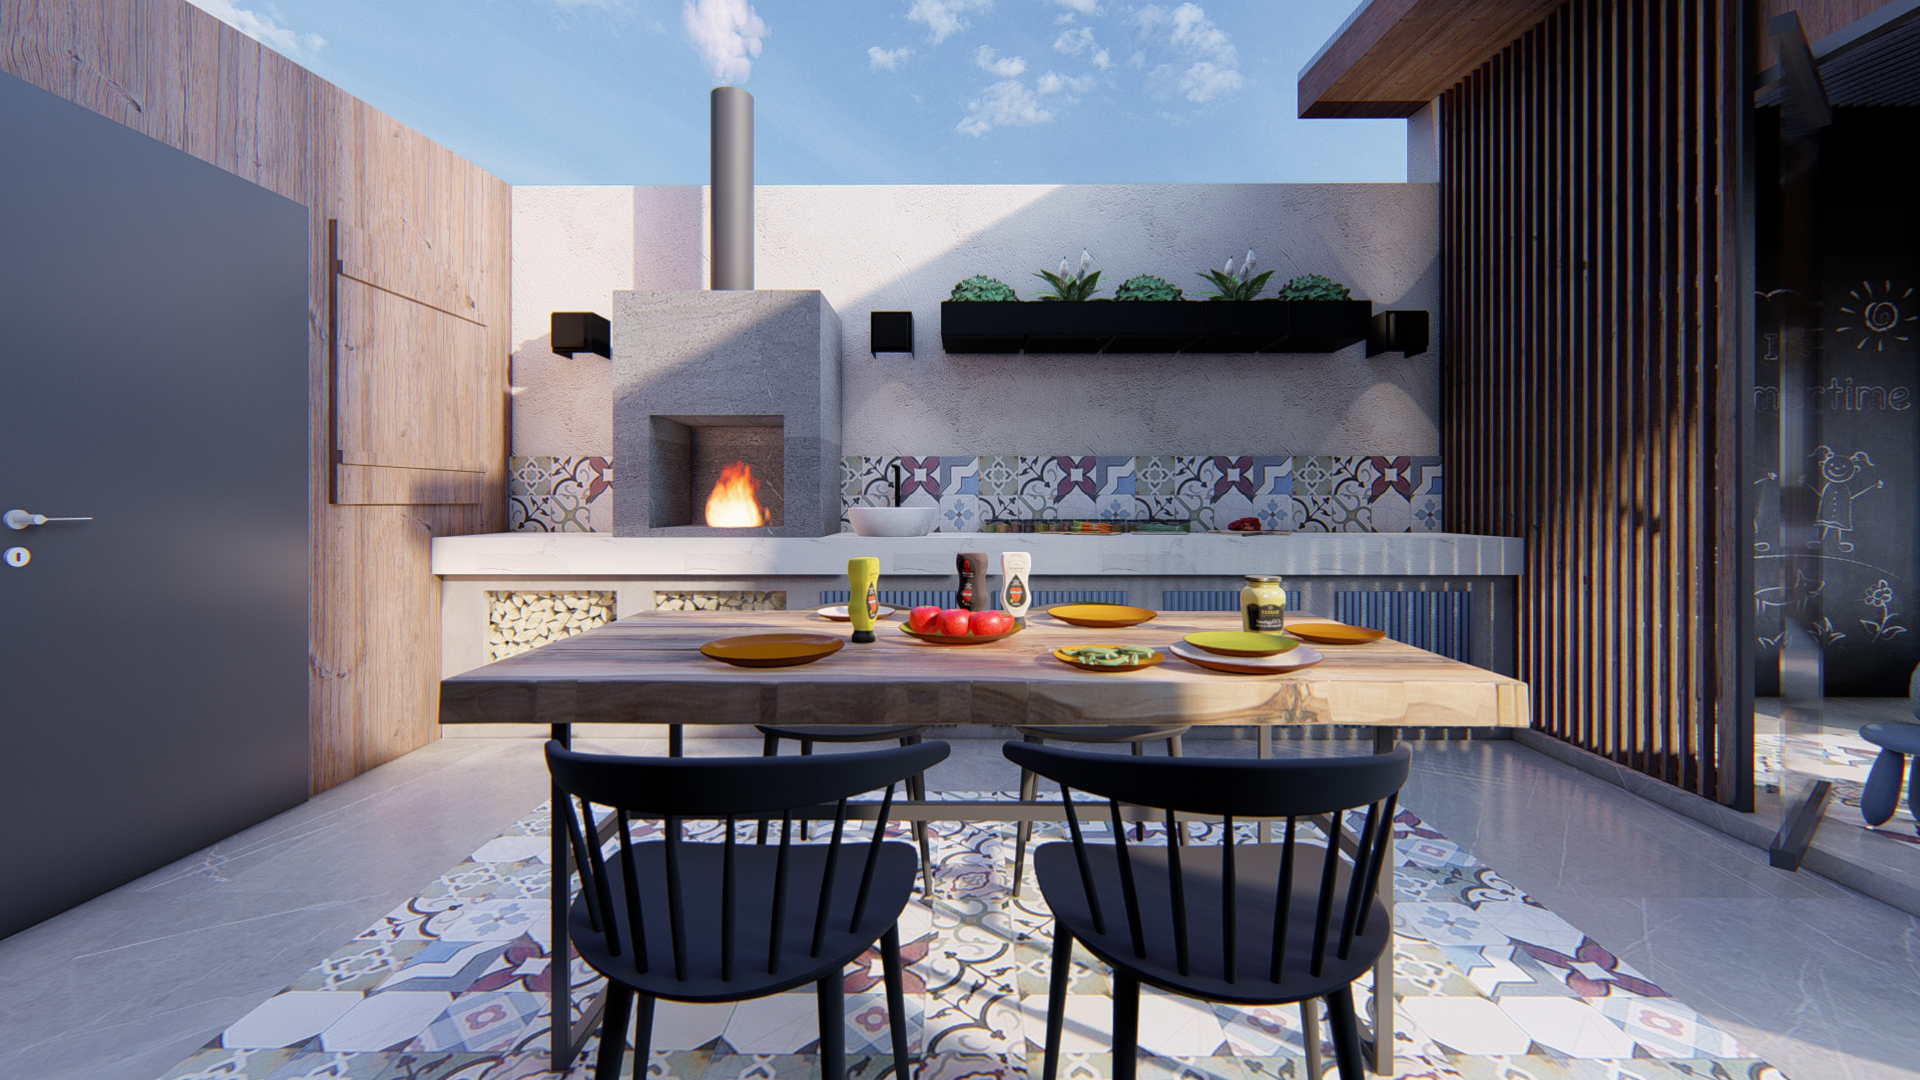 OUTDOOR KITCHEN 001